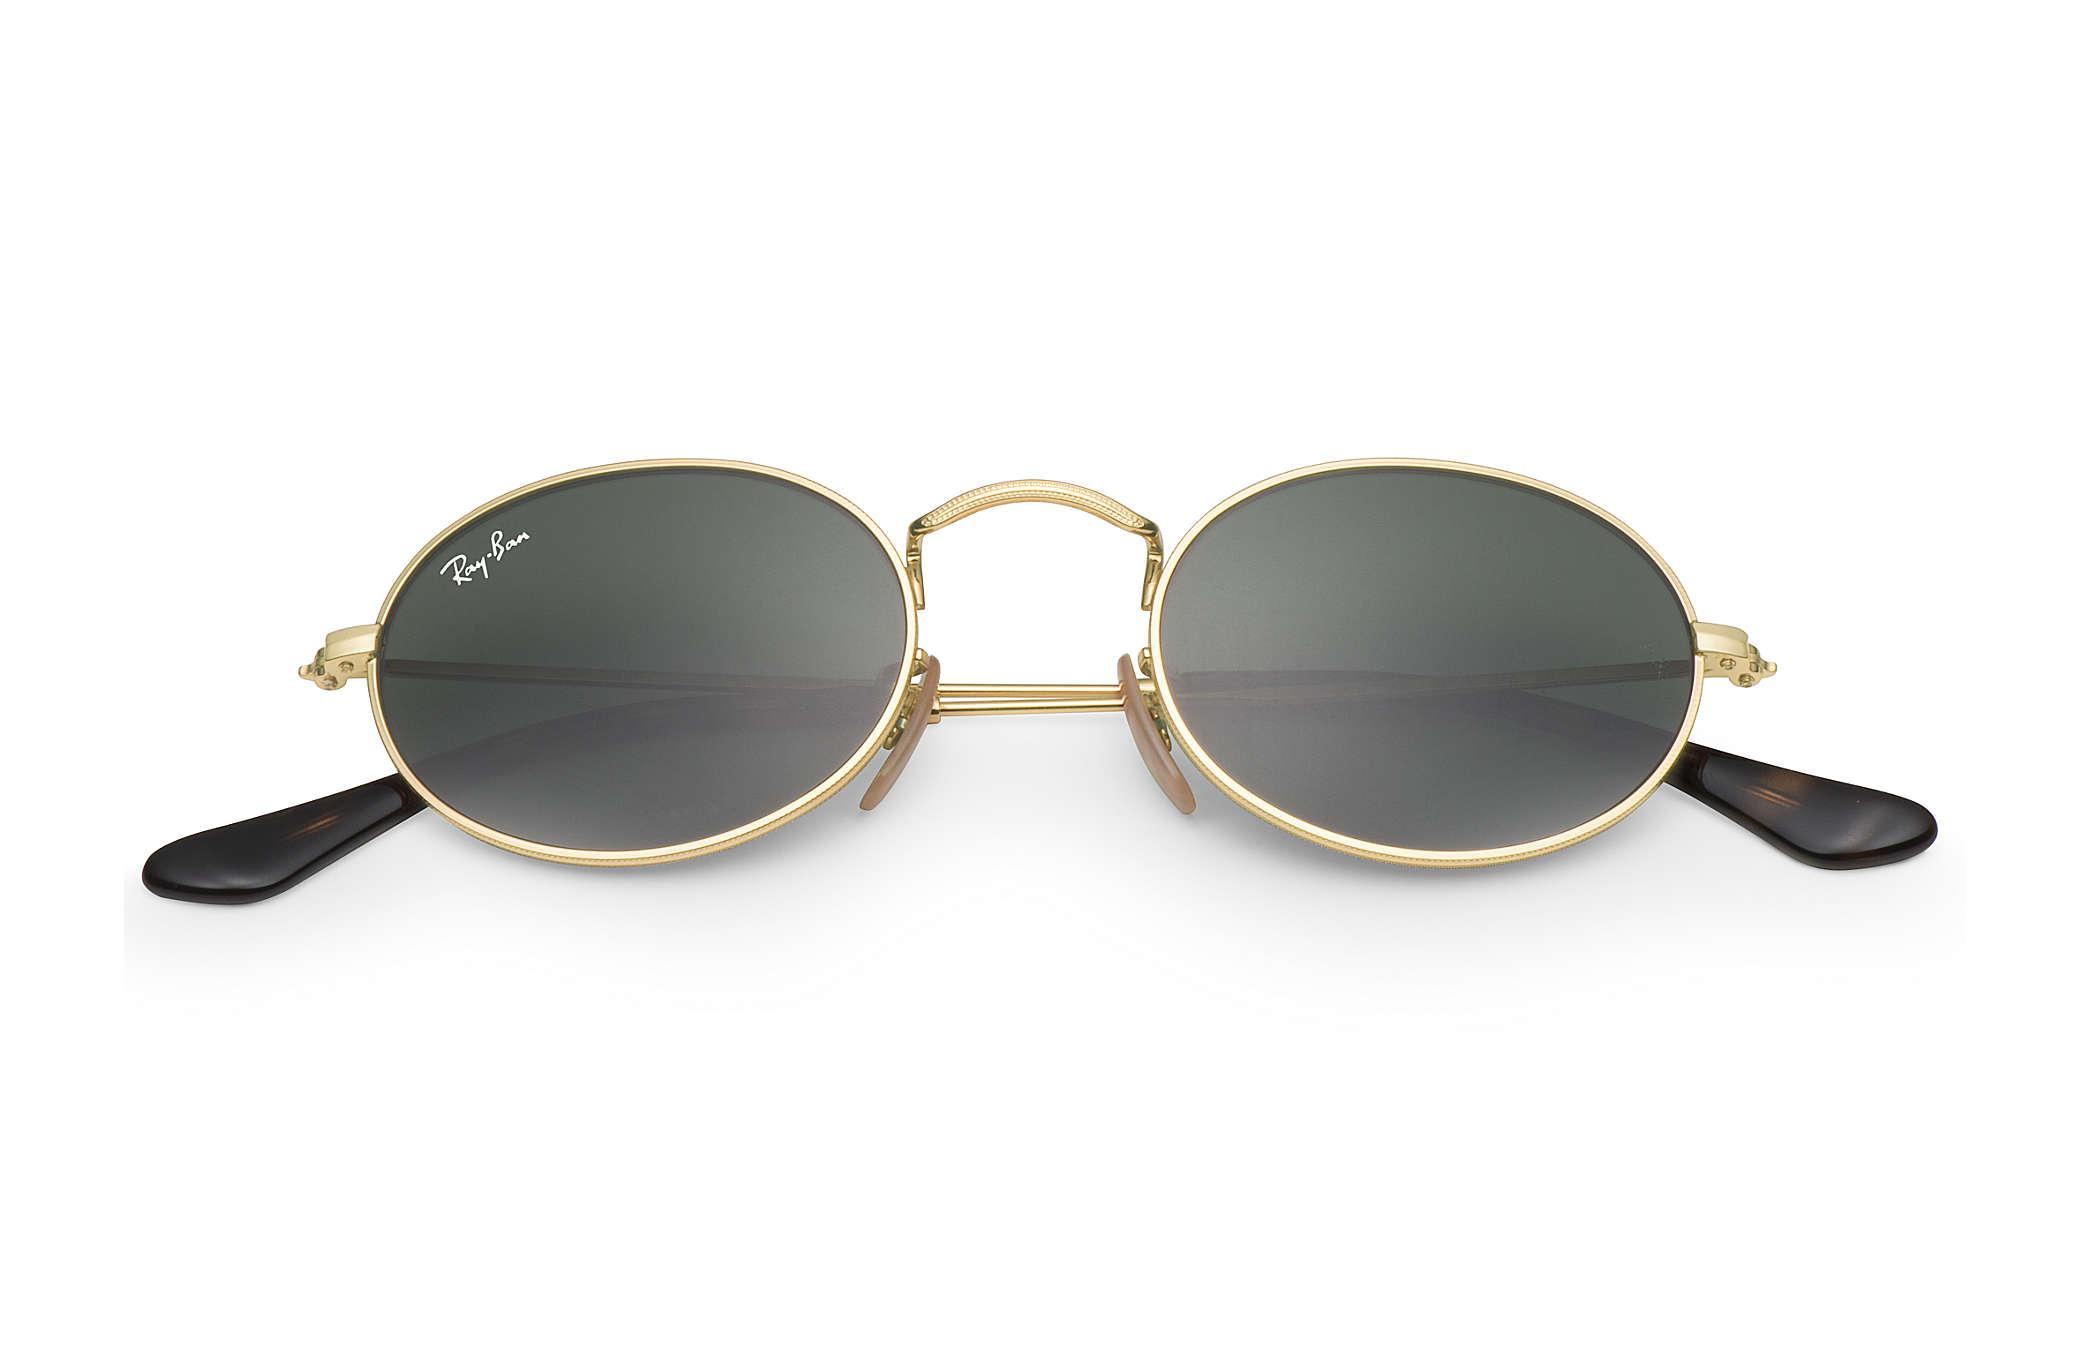 88c6af05051 Ray-Ban - Metallic Oval Flat Lenses for Men - Lyst. View fullscreen